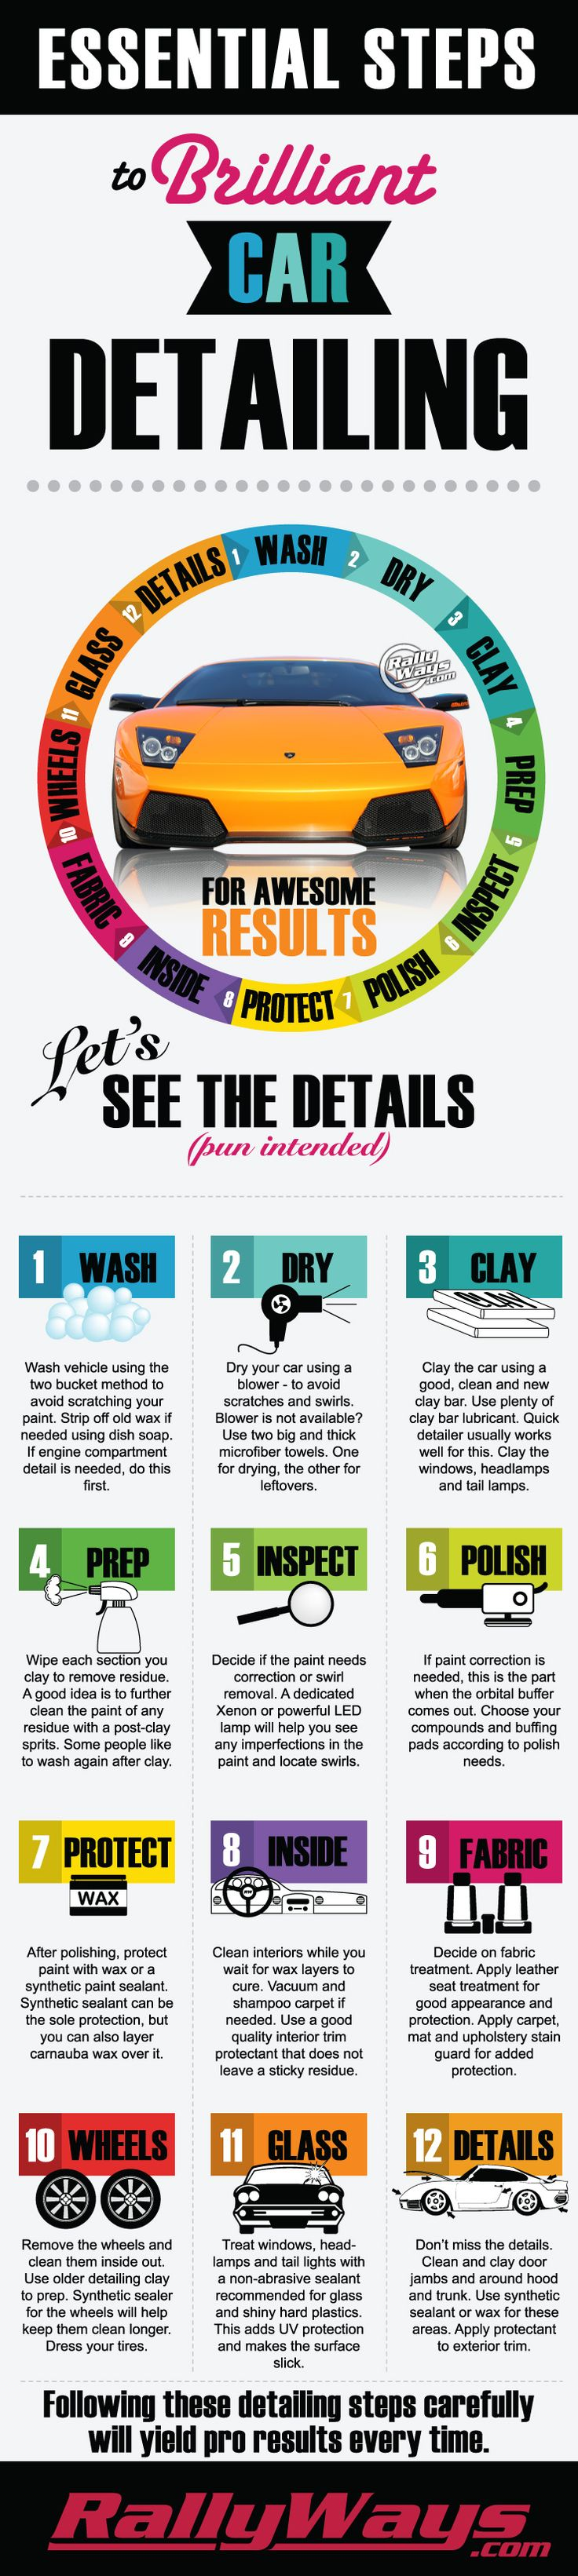 The complete professional car detailing step by step process infographic this infographic describes the essential